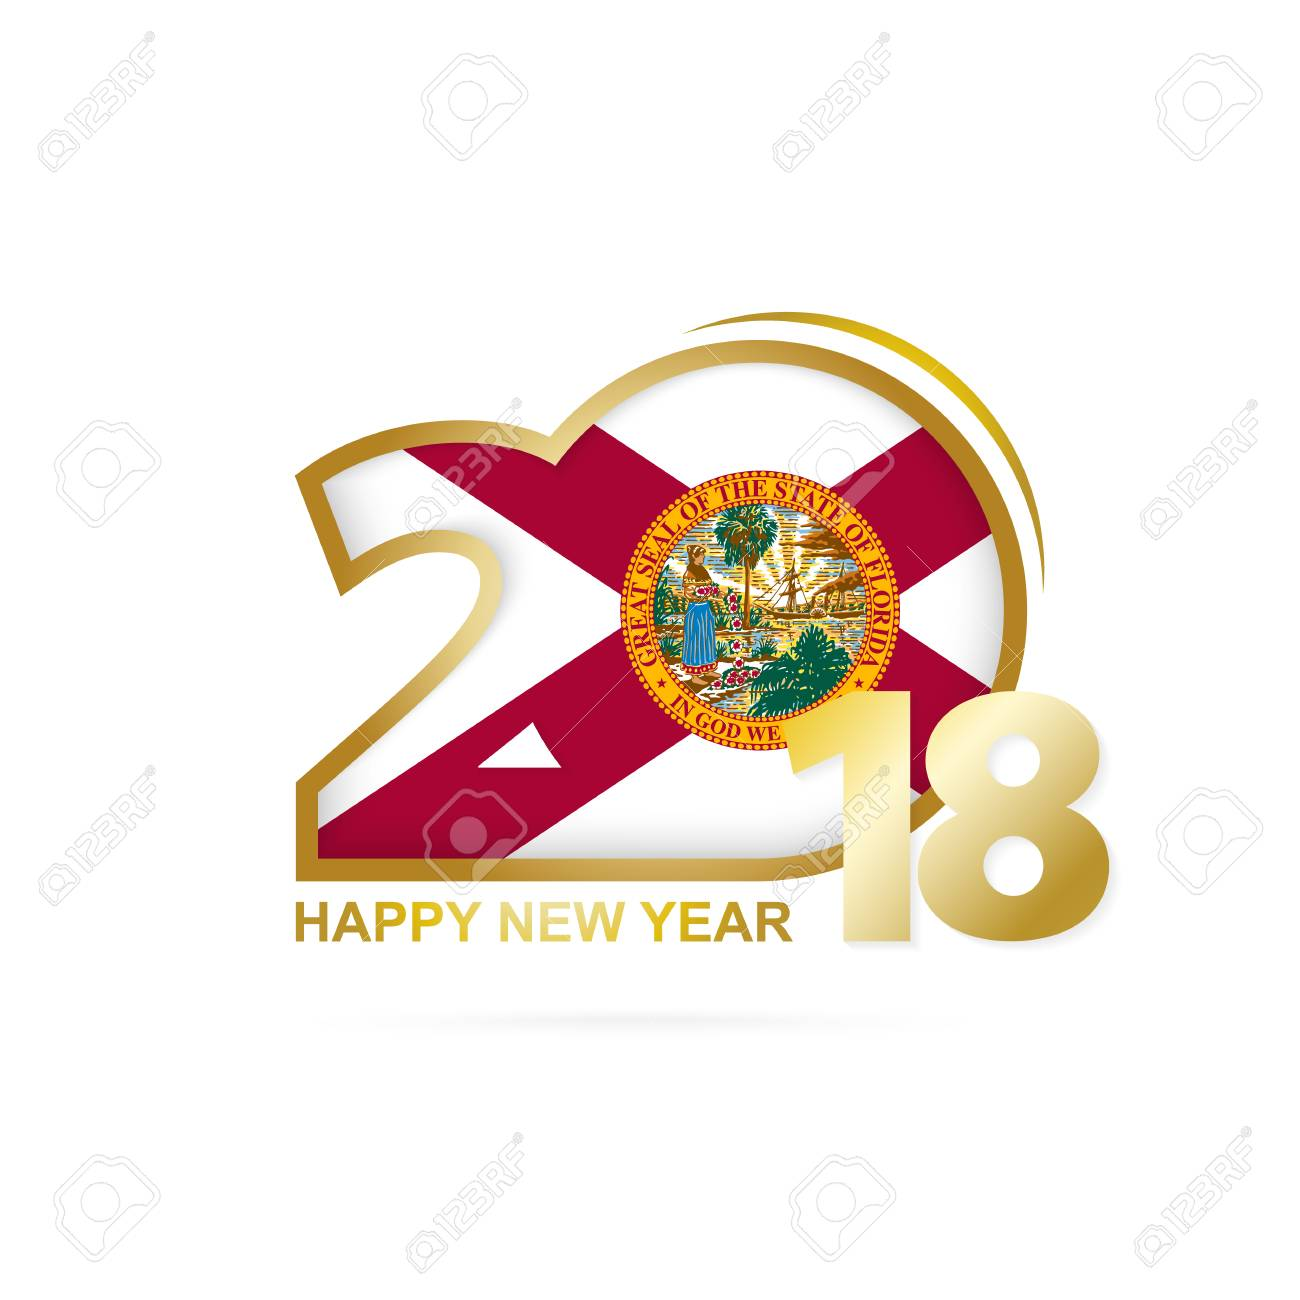 vector year 2018 with florida flag pattern happy new year design vector illustration